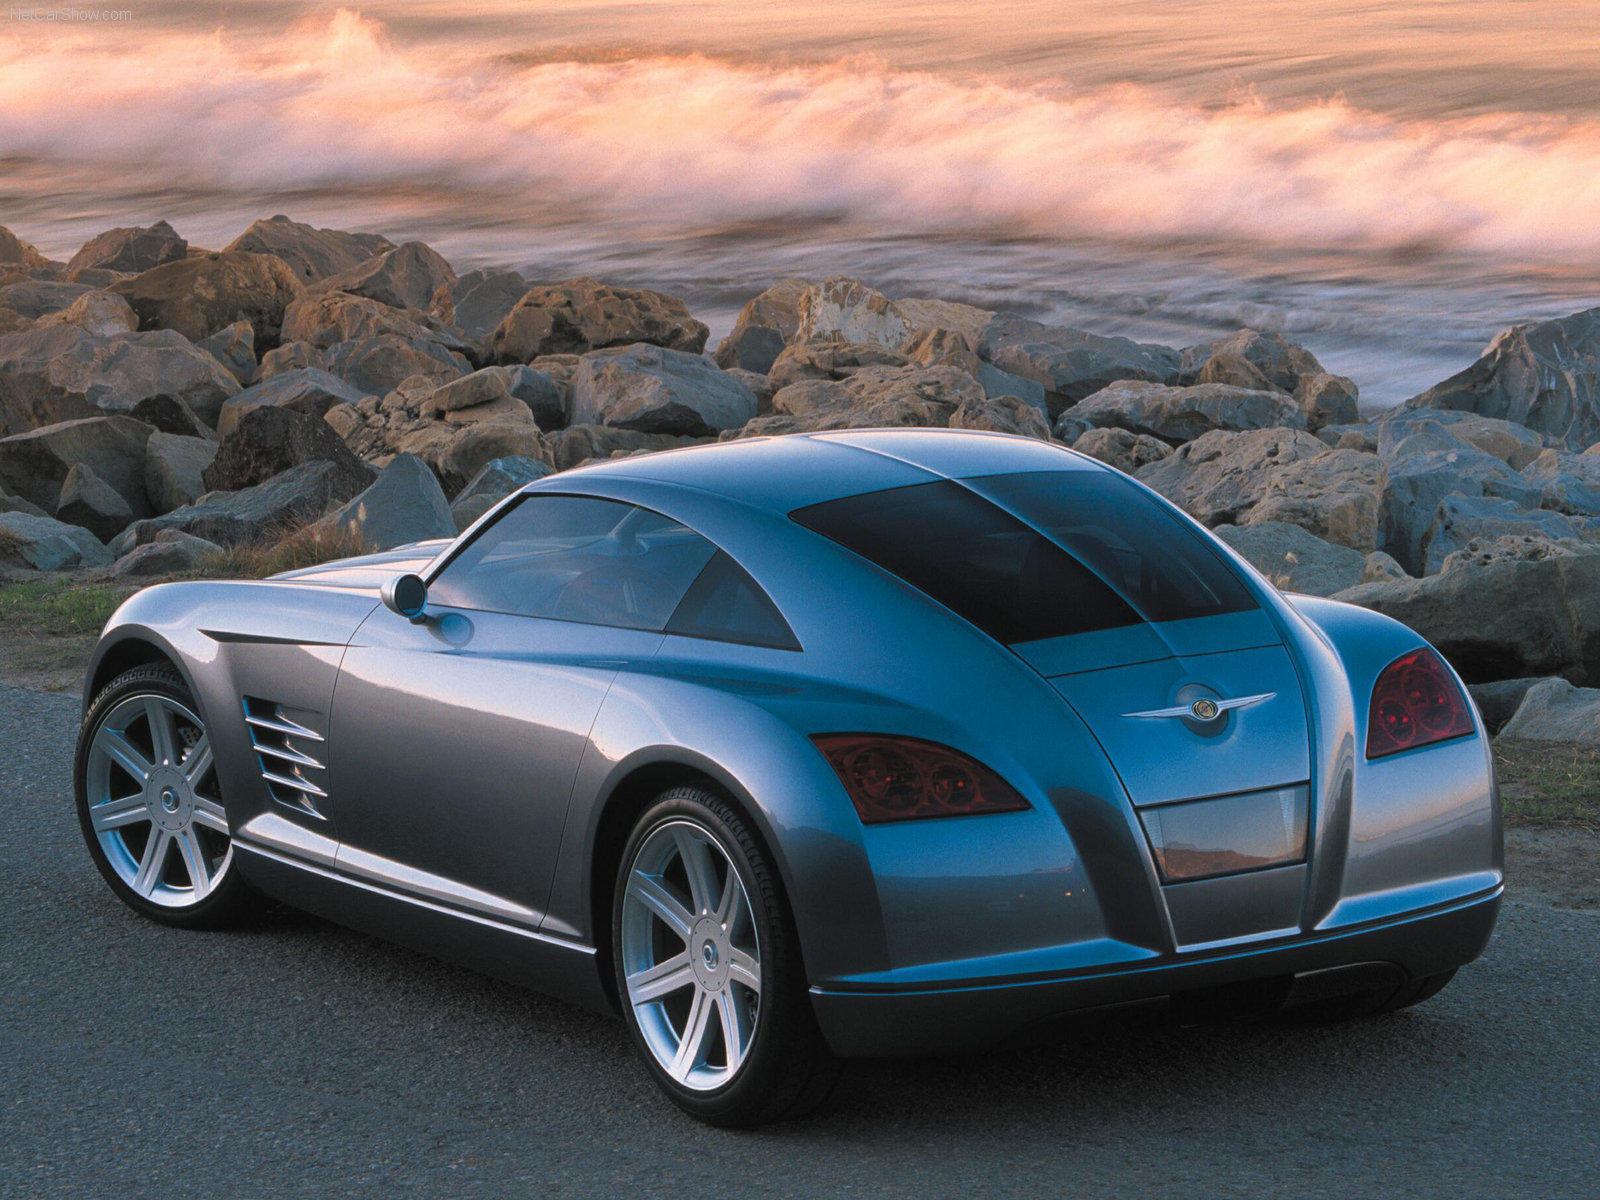 chrysler wallpaper (Chrysler Crossfire)